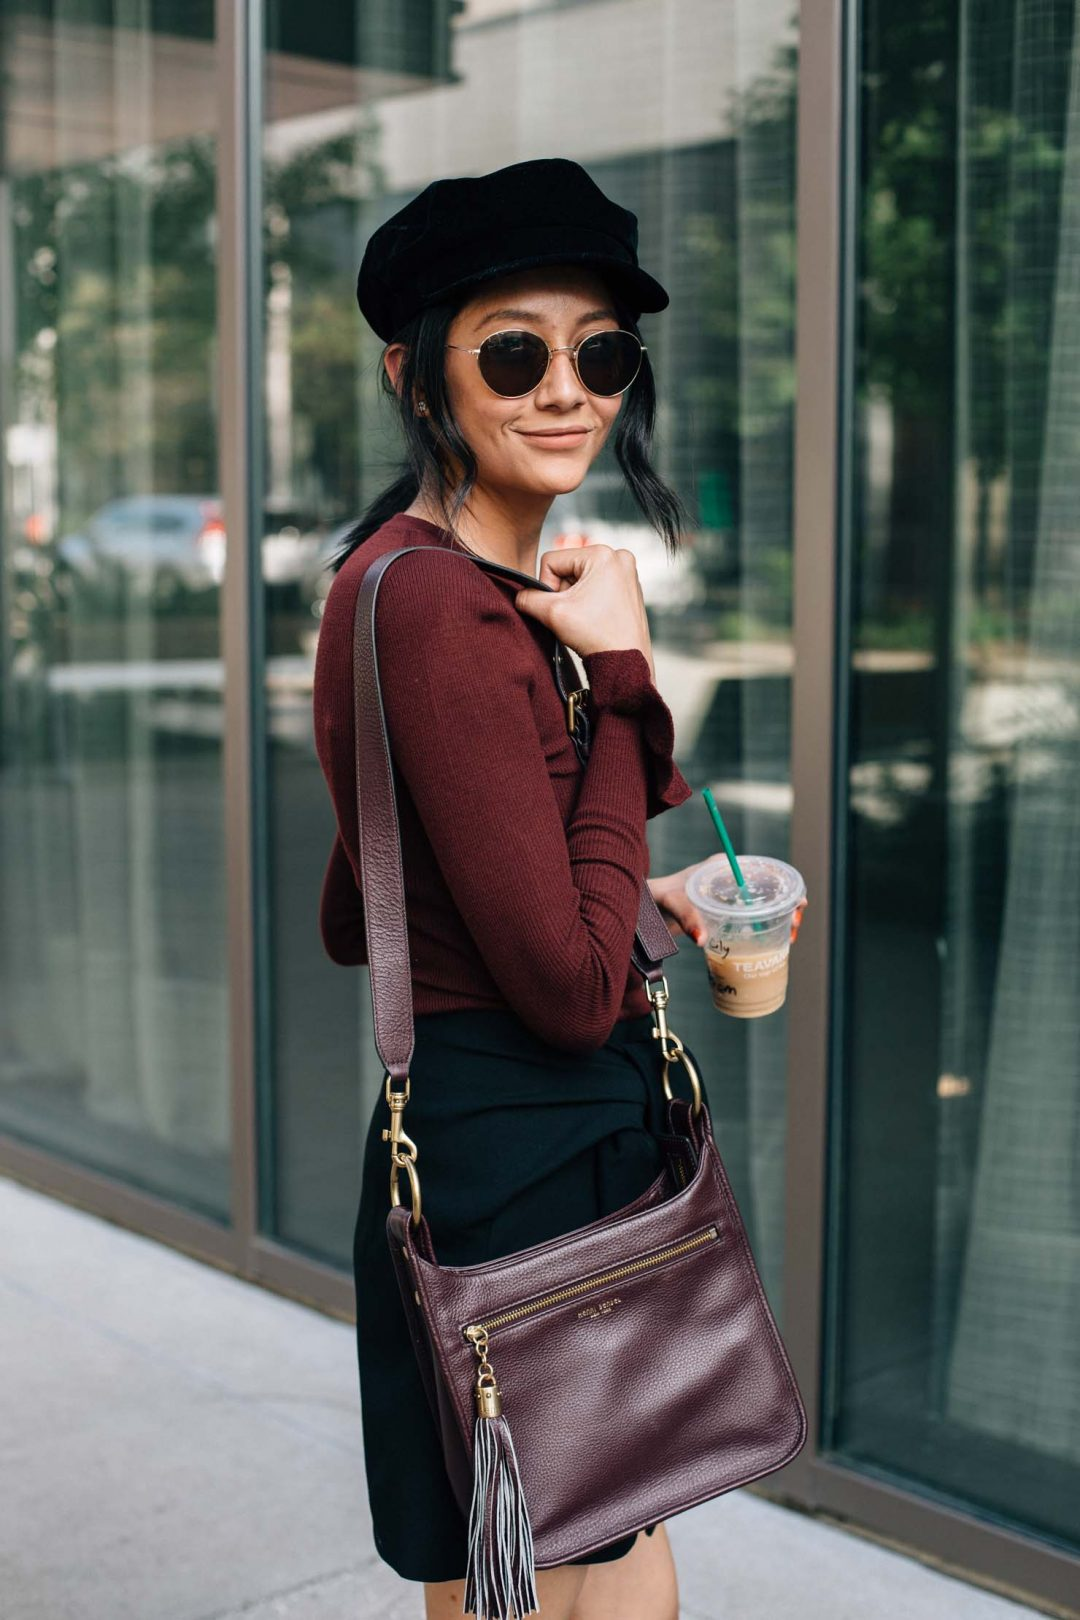 Lilly Beltran of Daily Craving blog wearing a burgundy sweater with ruffle sleeves and a black wrap skirt with a baker boy hat